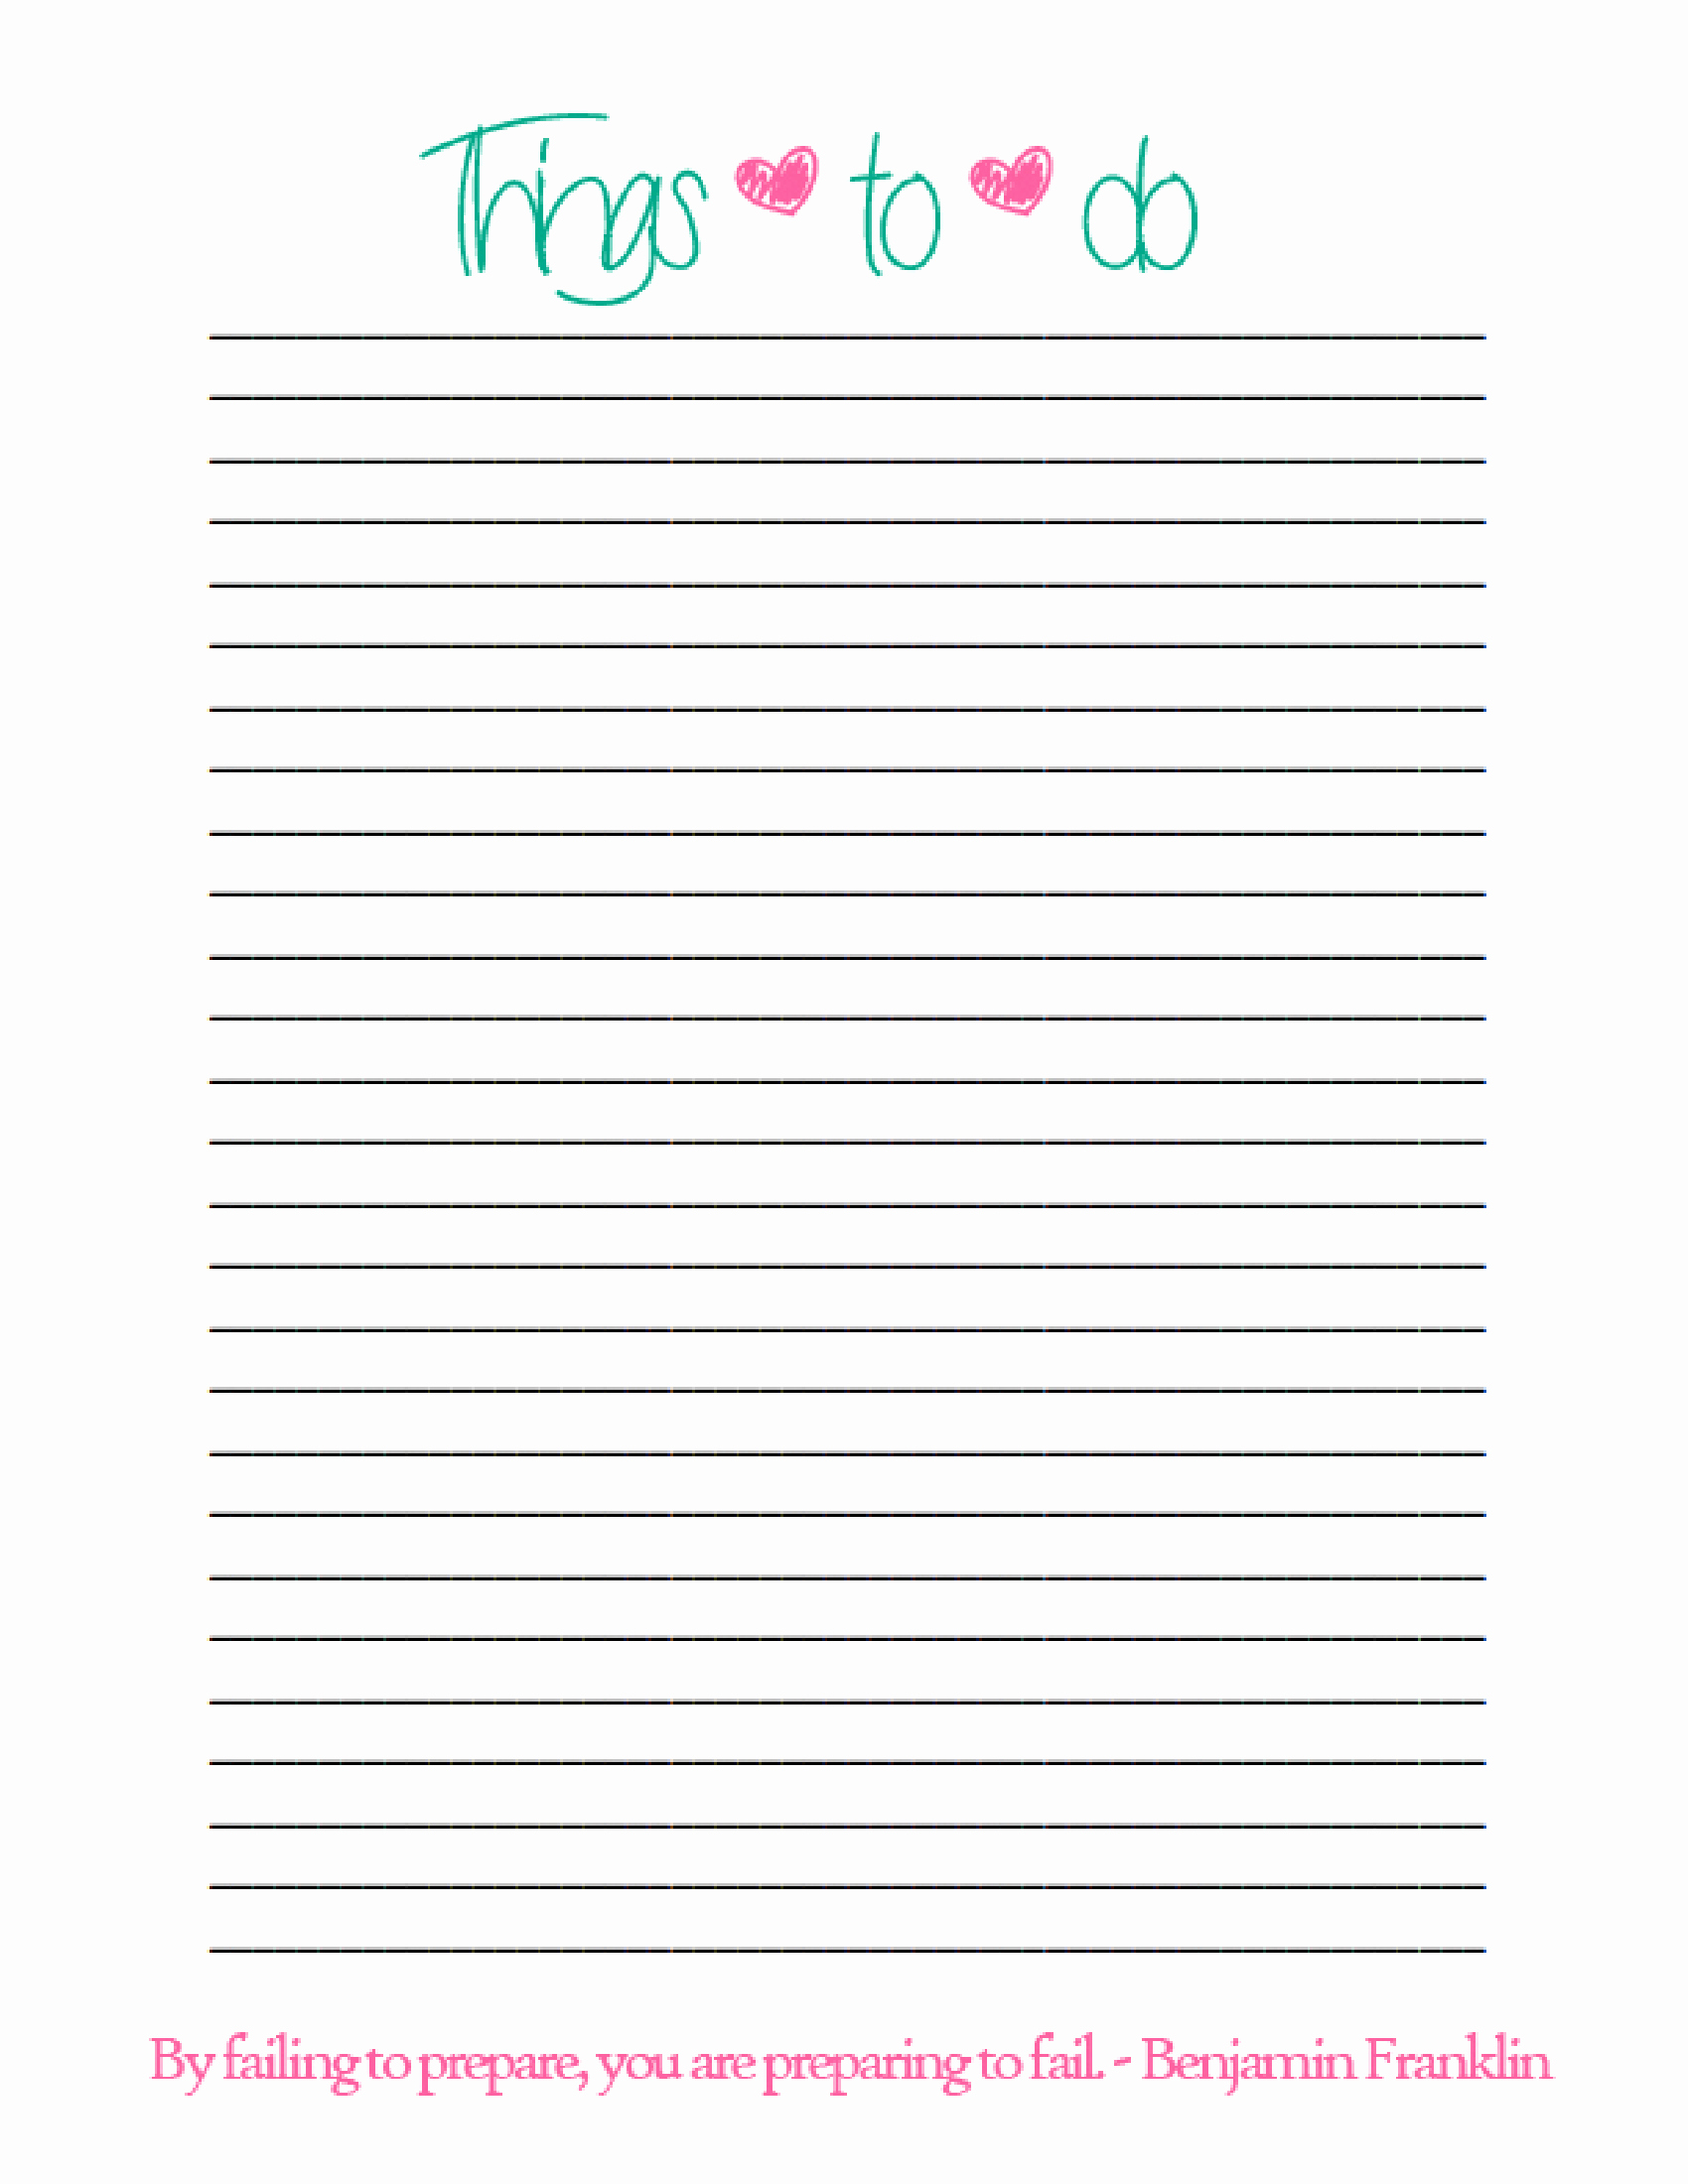 Things to Do List Template Best Of Simple Things to Do List Pdf Favorite Quotes